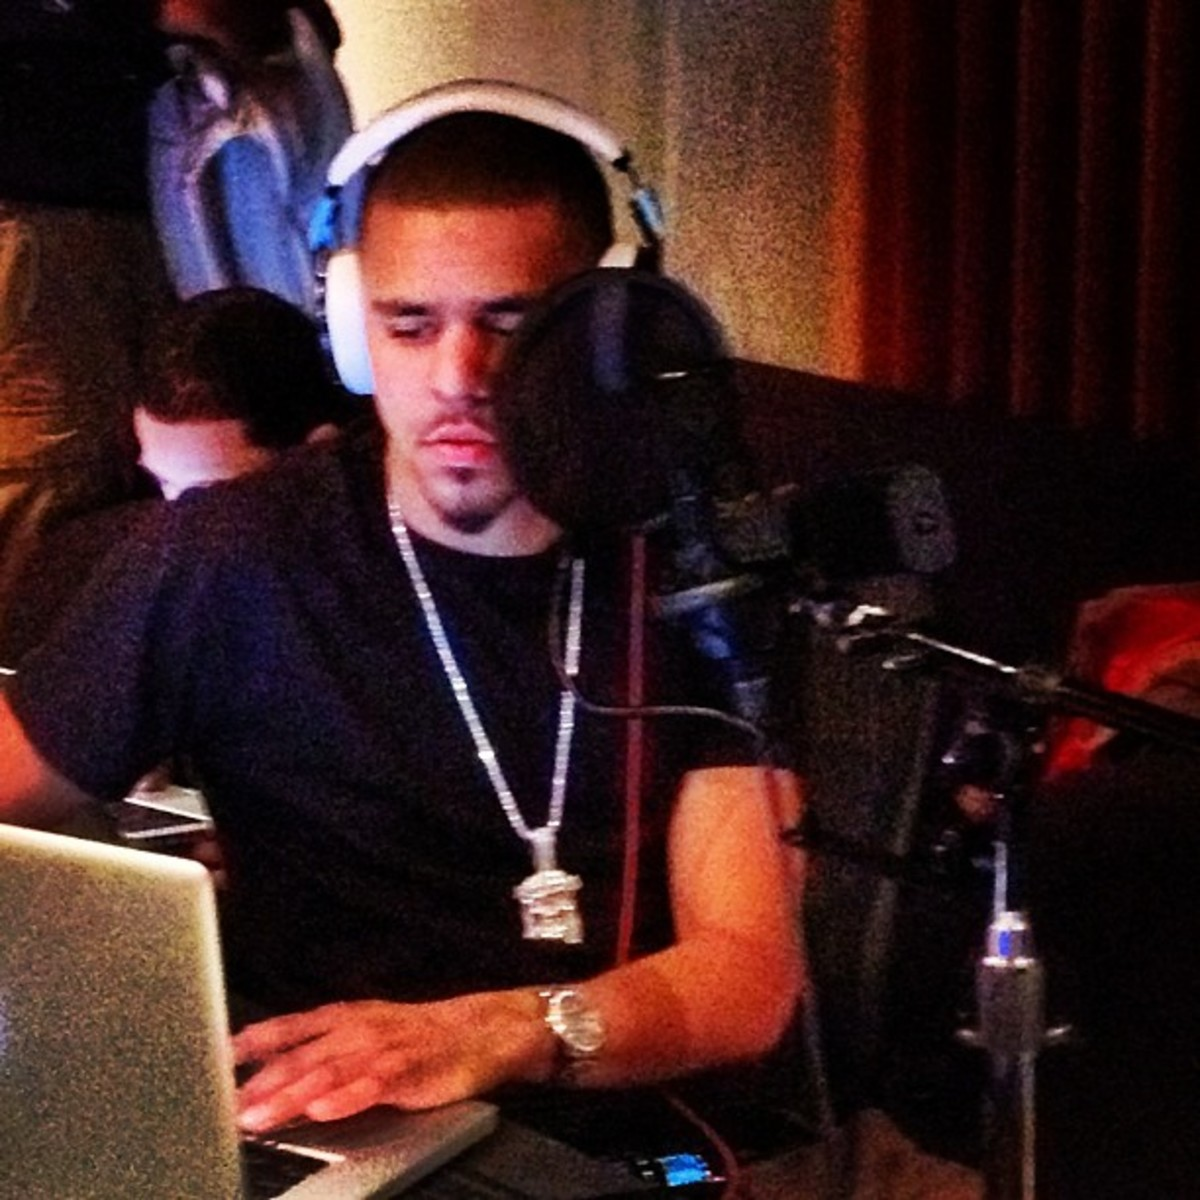 J. Cole recording in the studio, young